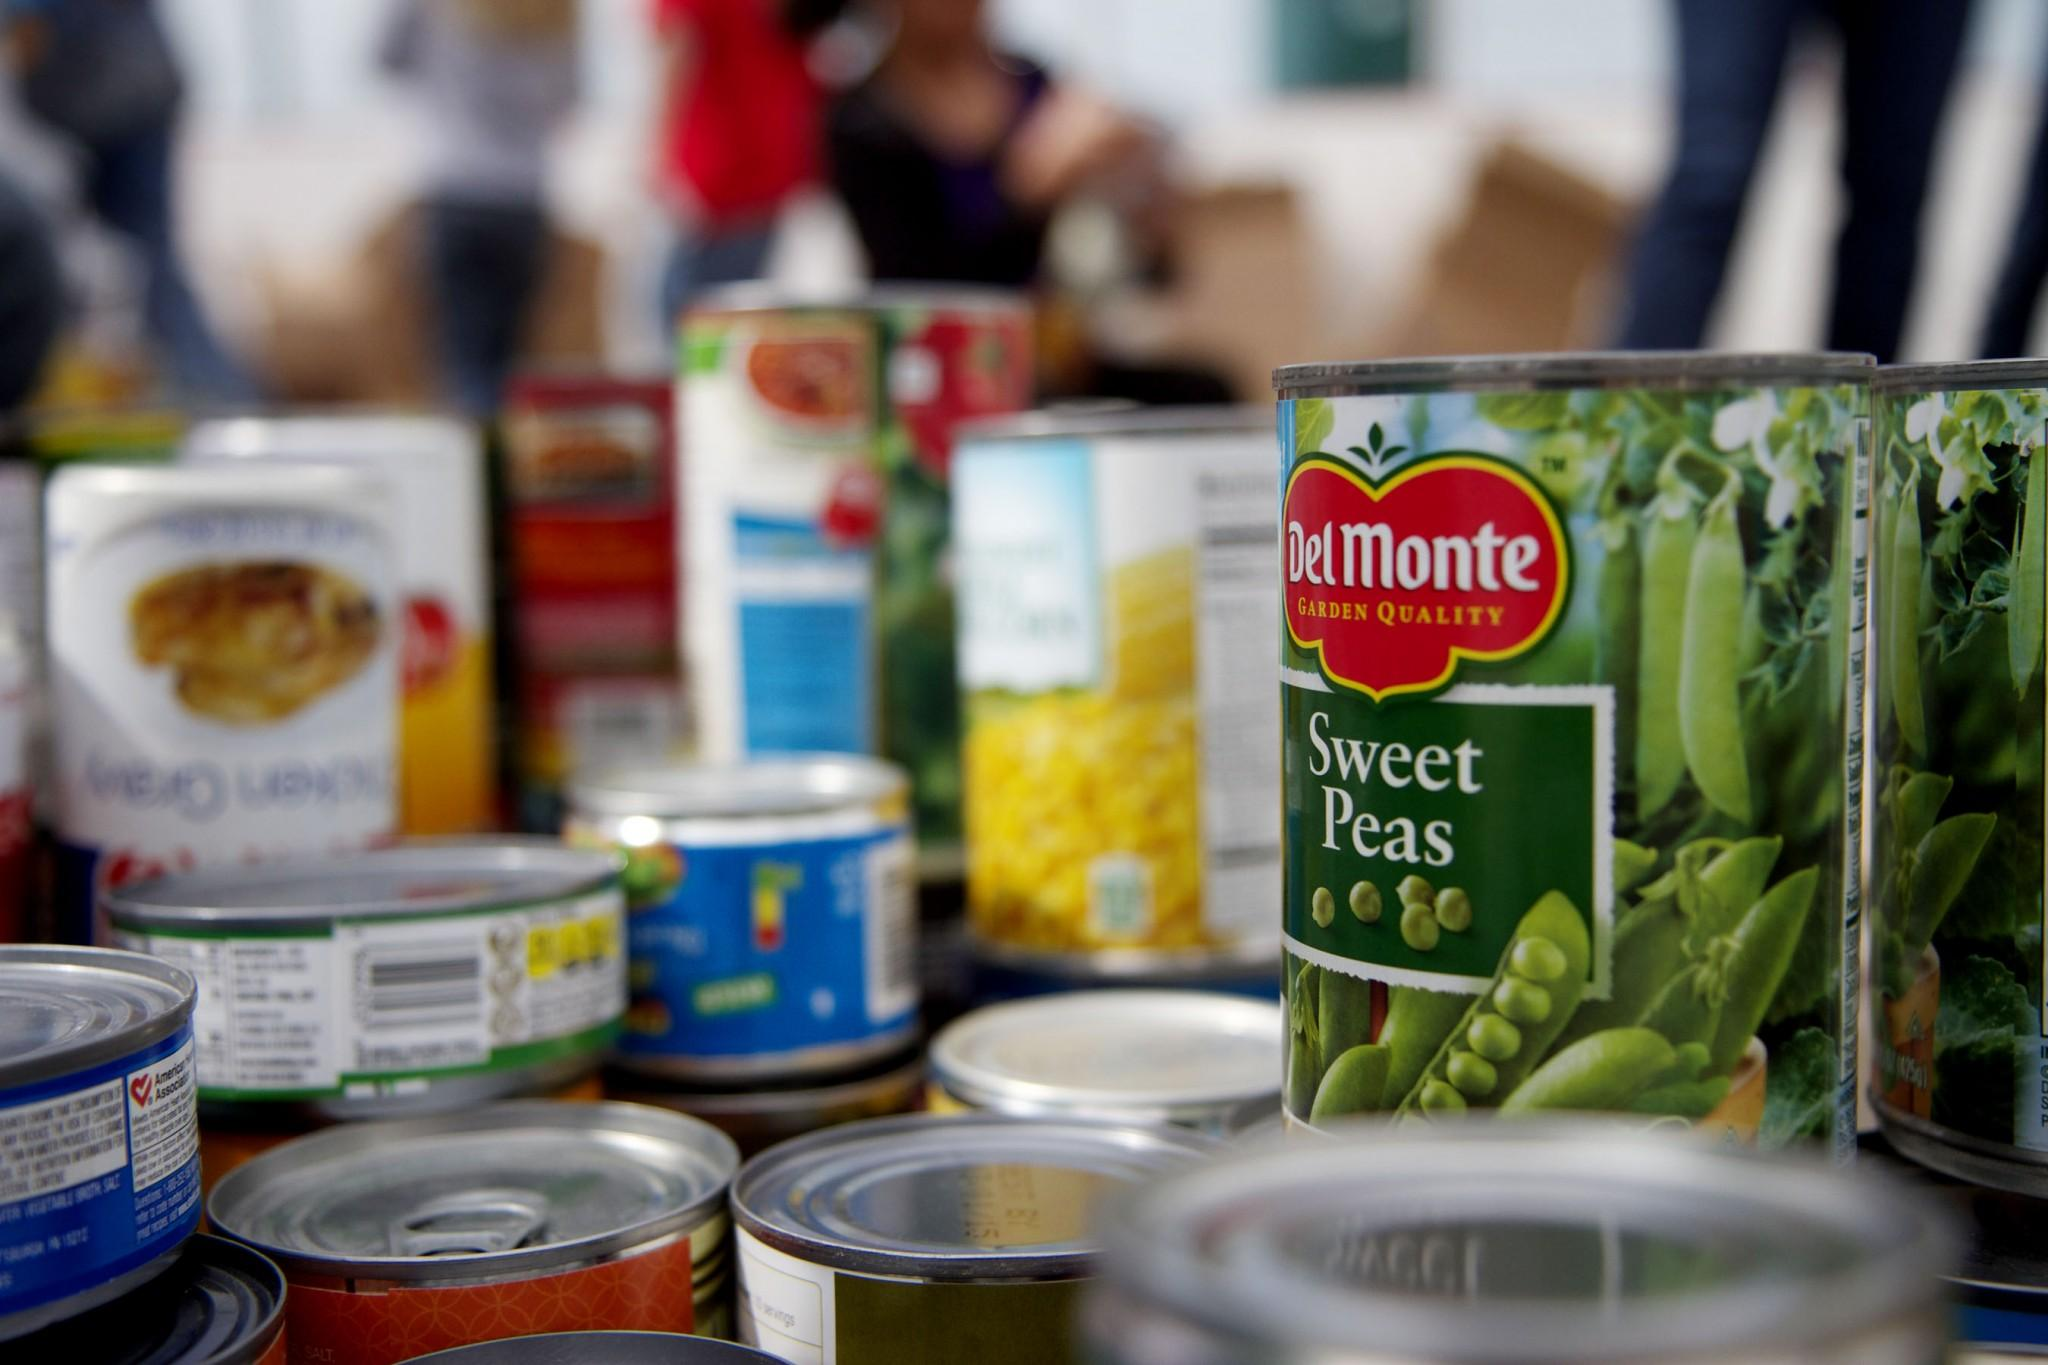 Student groups to bring food bank truck on campus to combat food insecurity